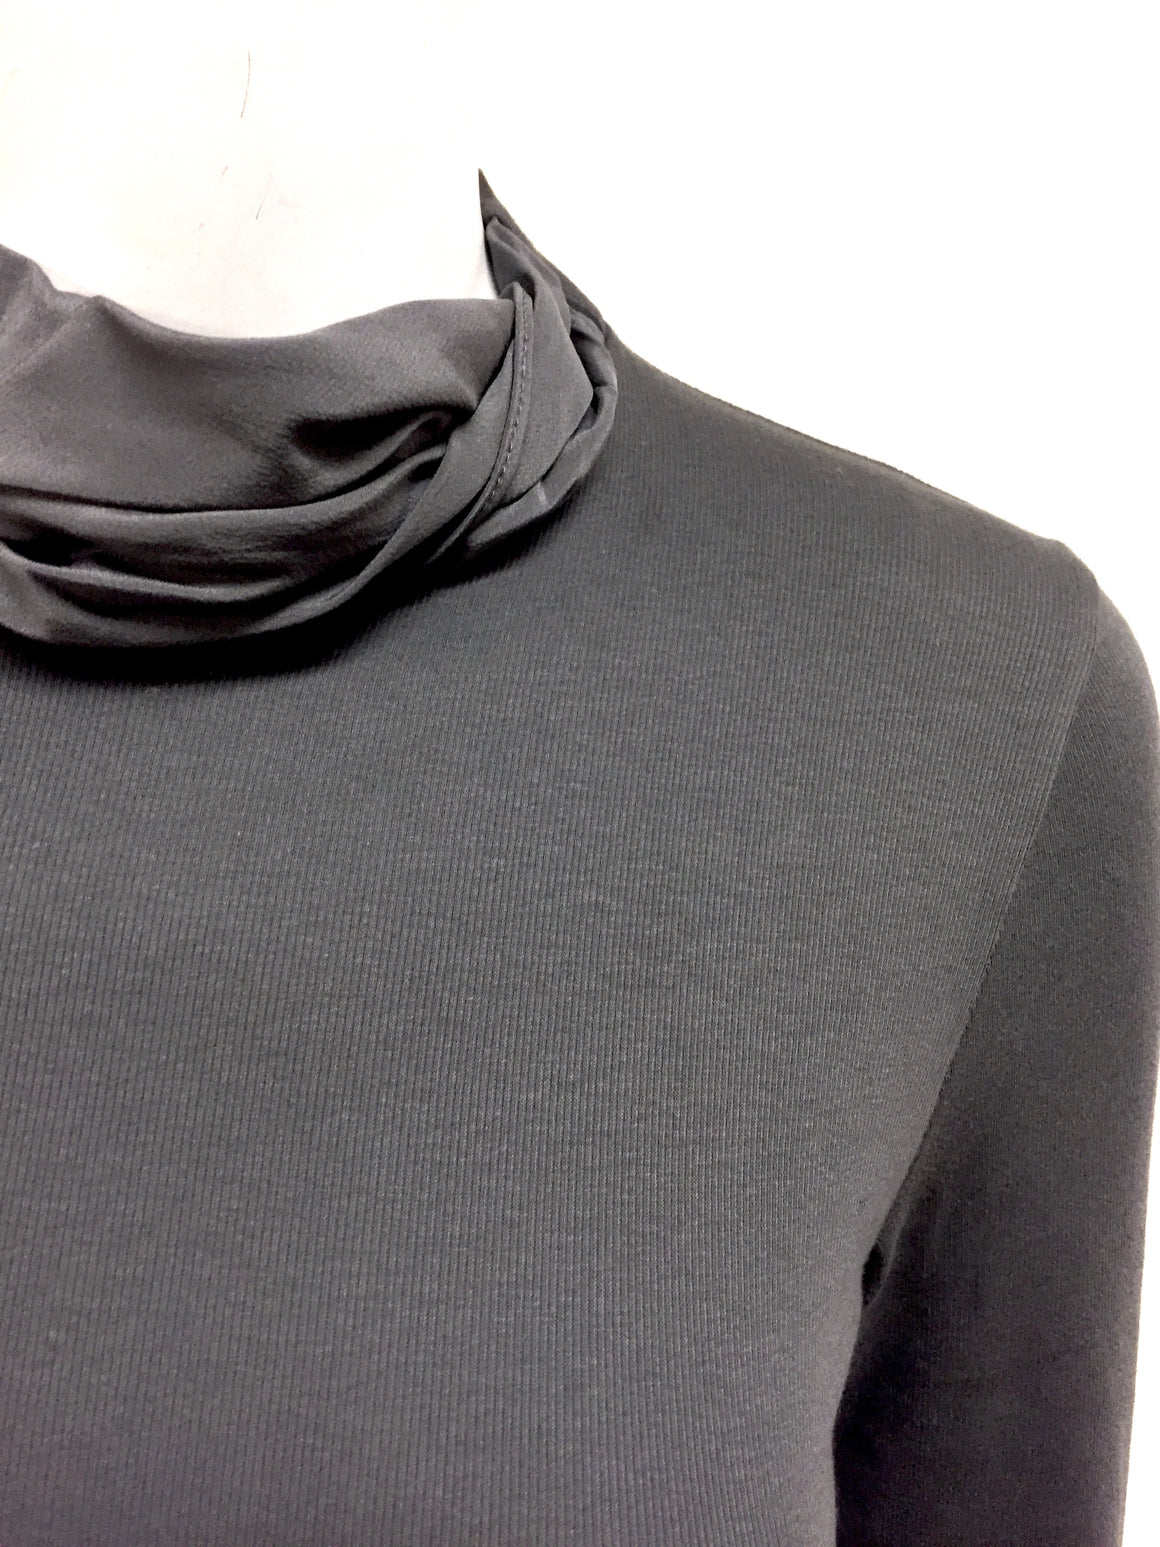 RIVAMONTI by BRUNELLO CUCINELLI New with Tags Graphite-Gray Cotton-Blend Silk Neckline T-Shirt Top  Size: M/L